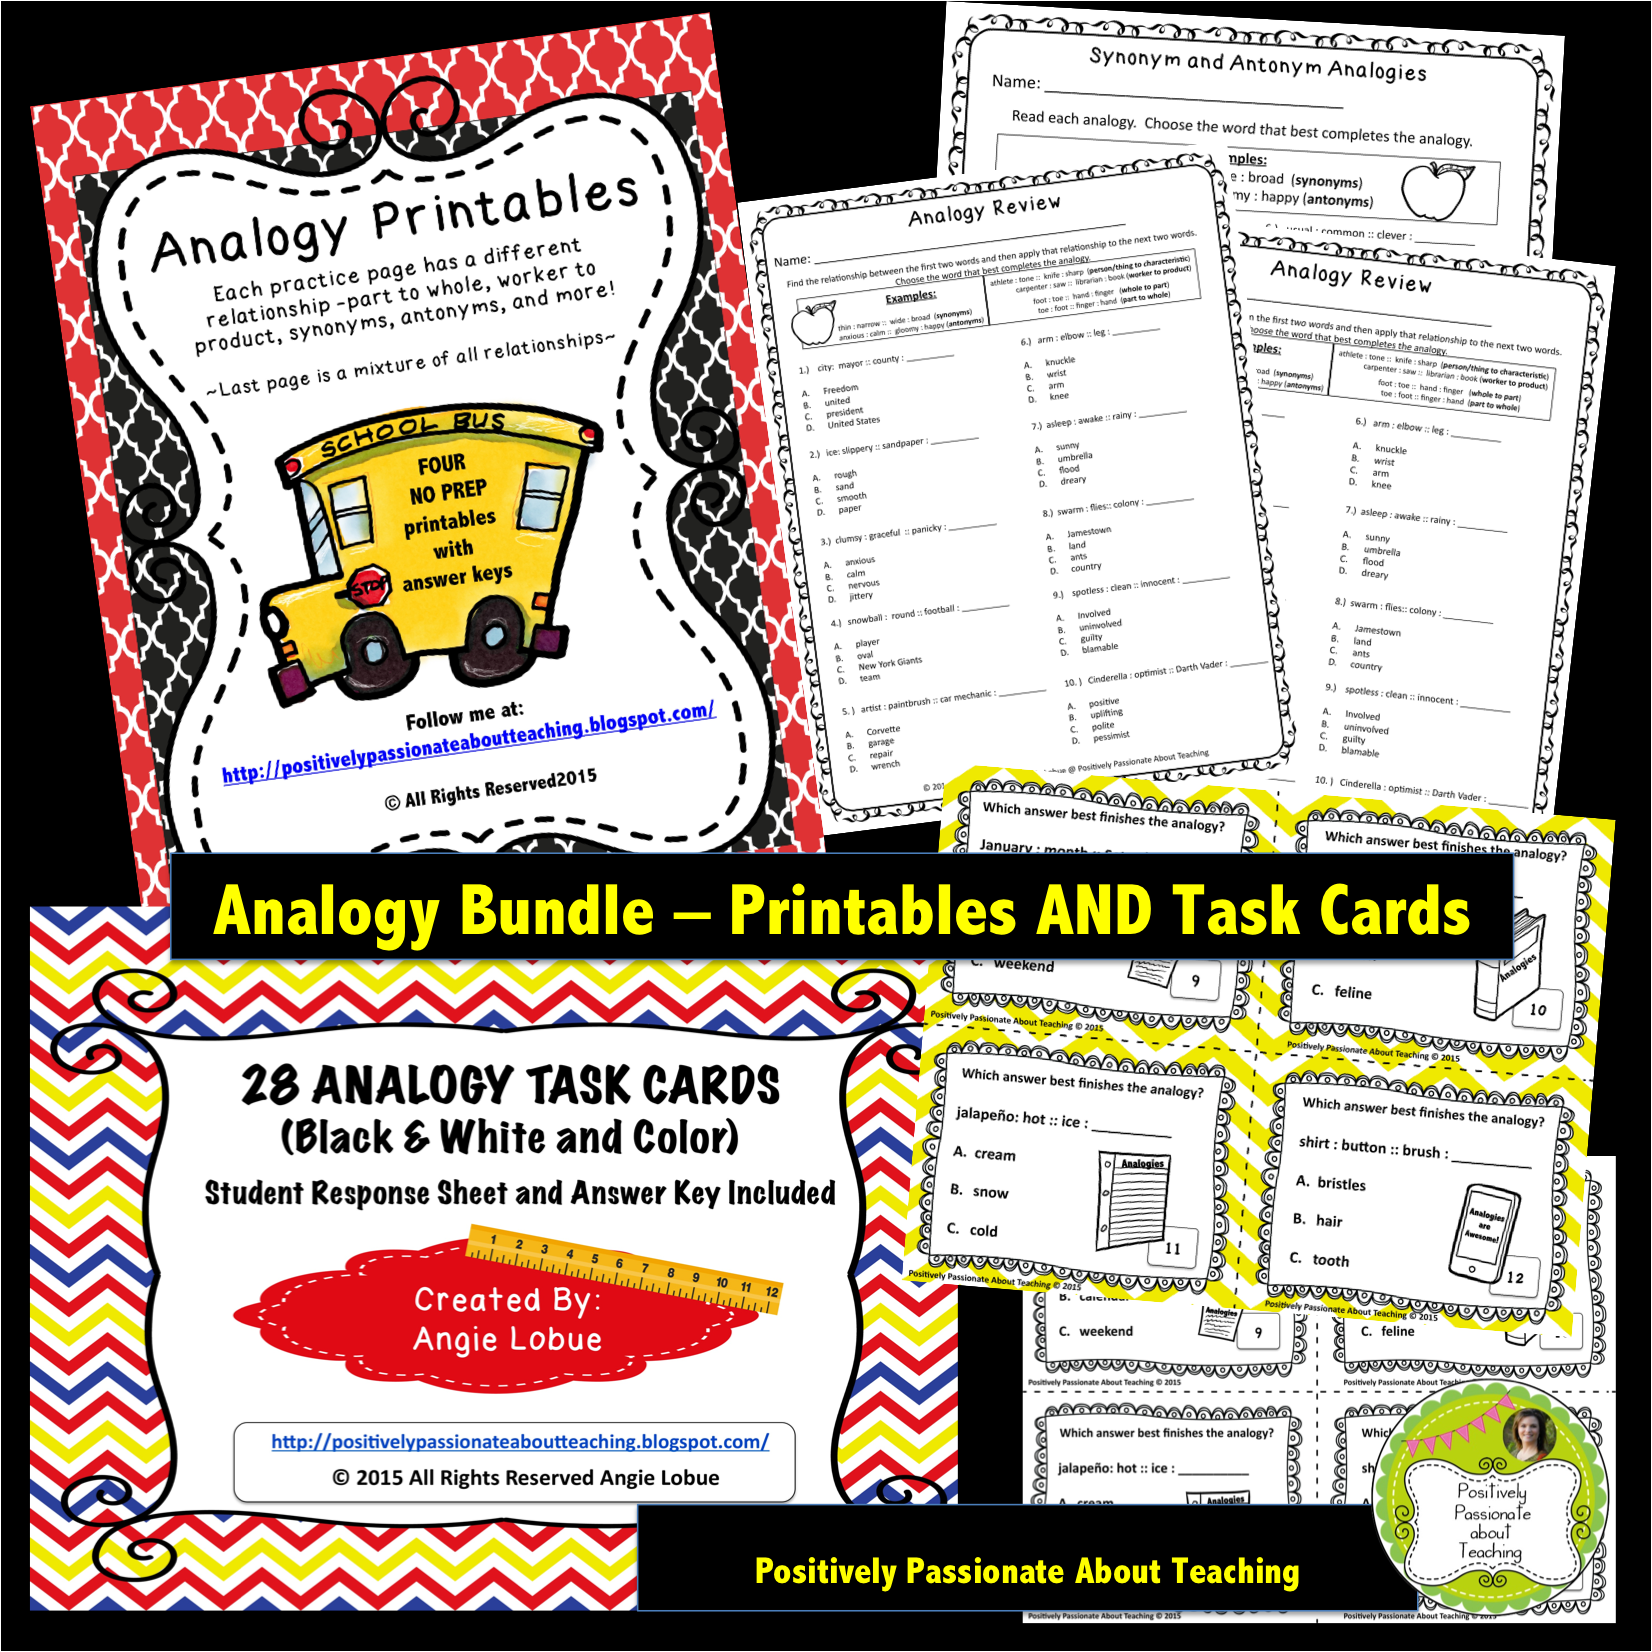 Analogy Bundle: Practice Printables And Task Cards